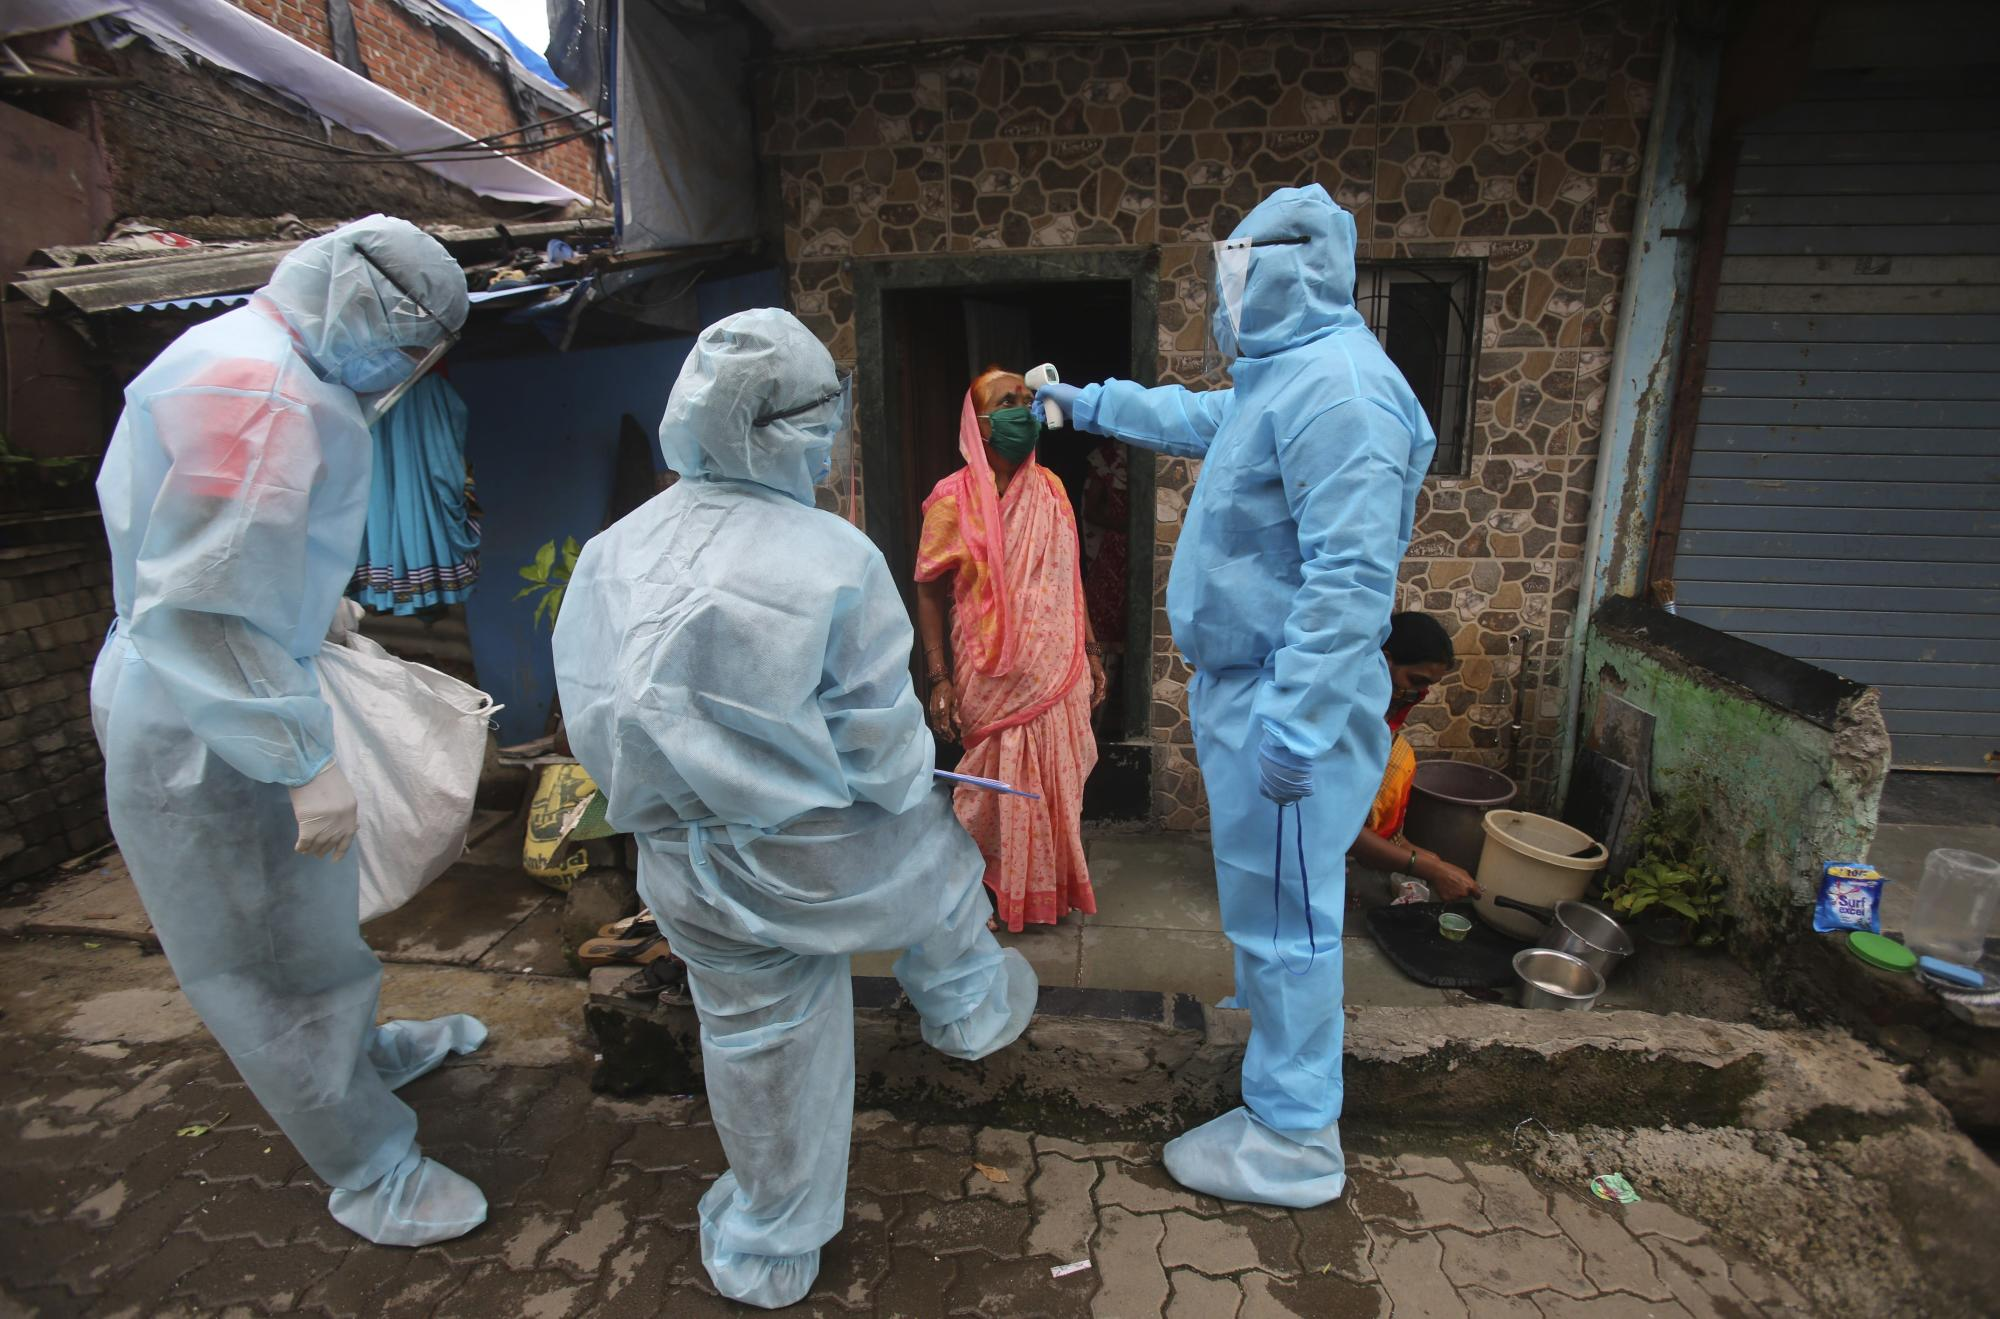 Worst virus fears are realized in poor or war-torn countries